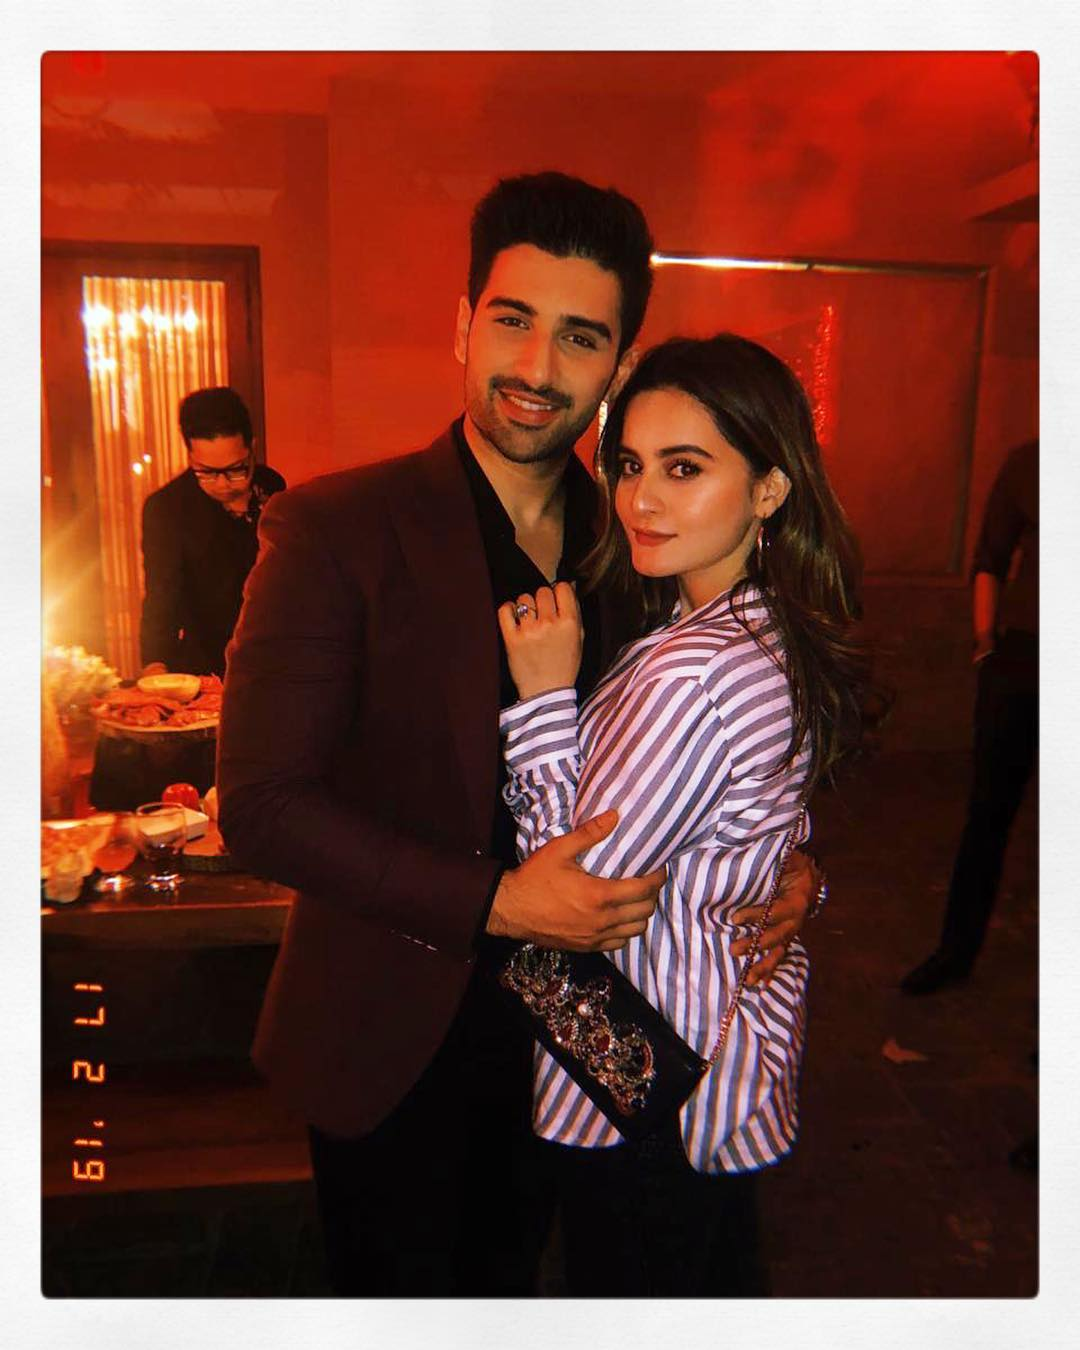 Awesome Photos of Aiman Minal and Muneeb at a Musical Night